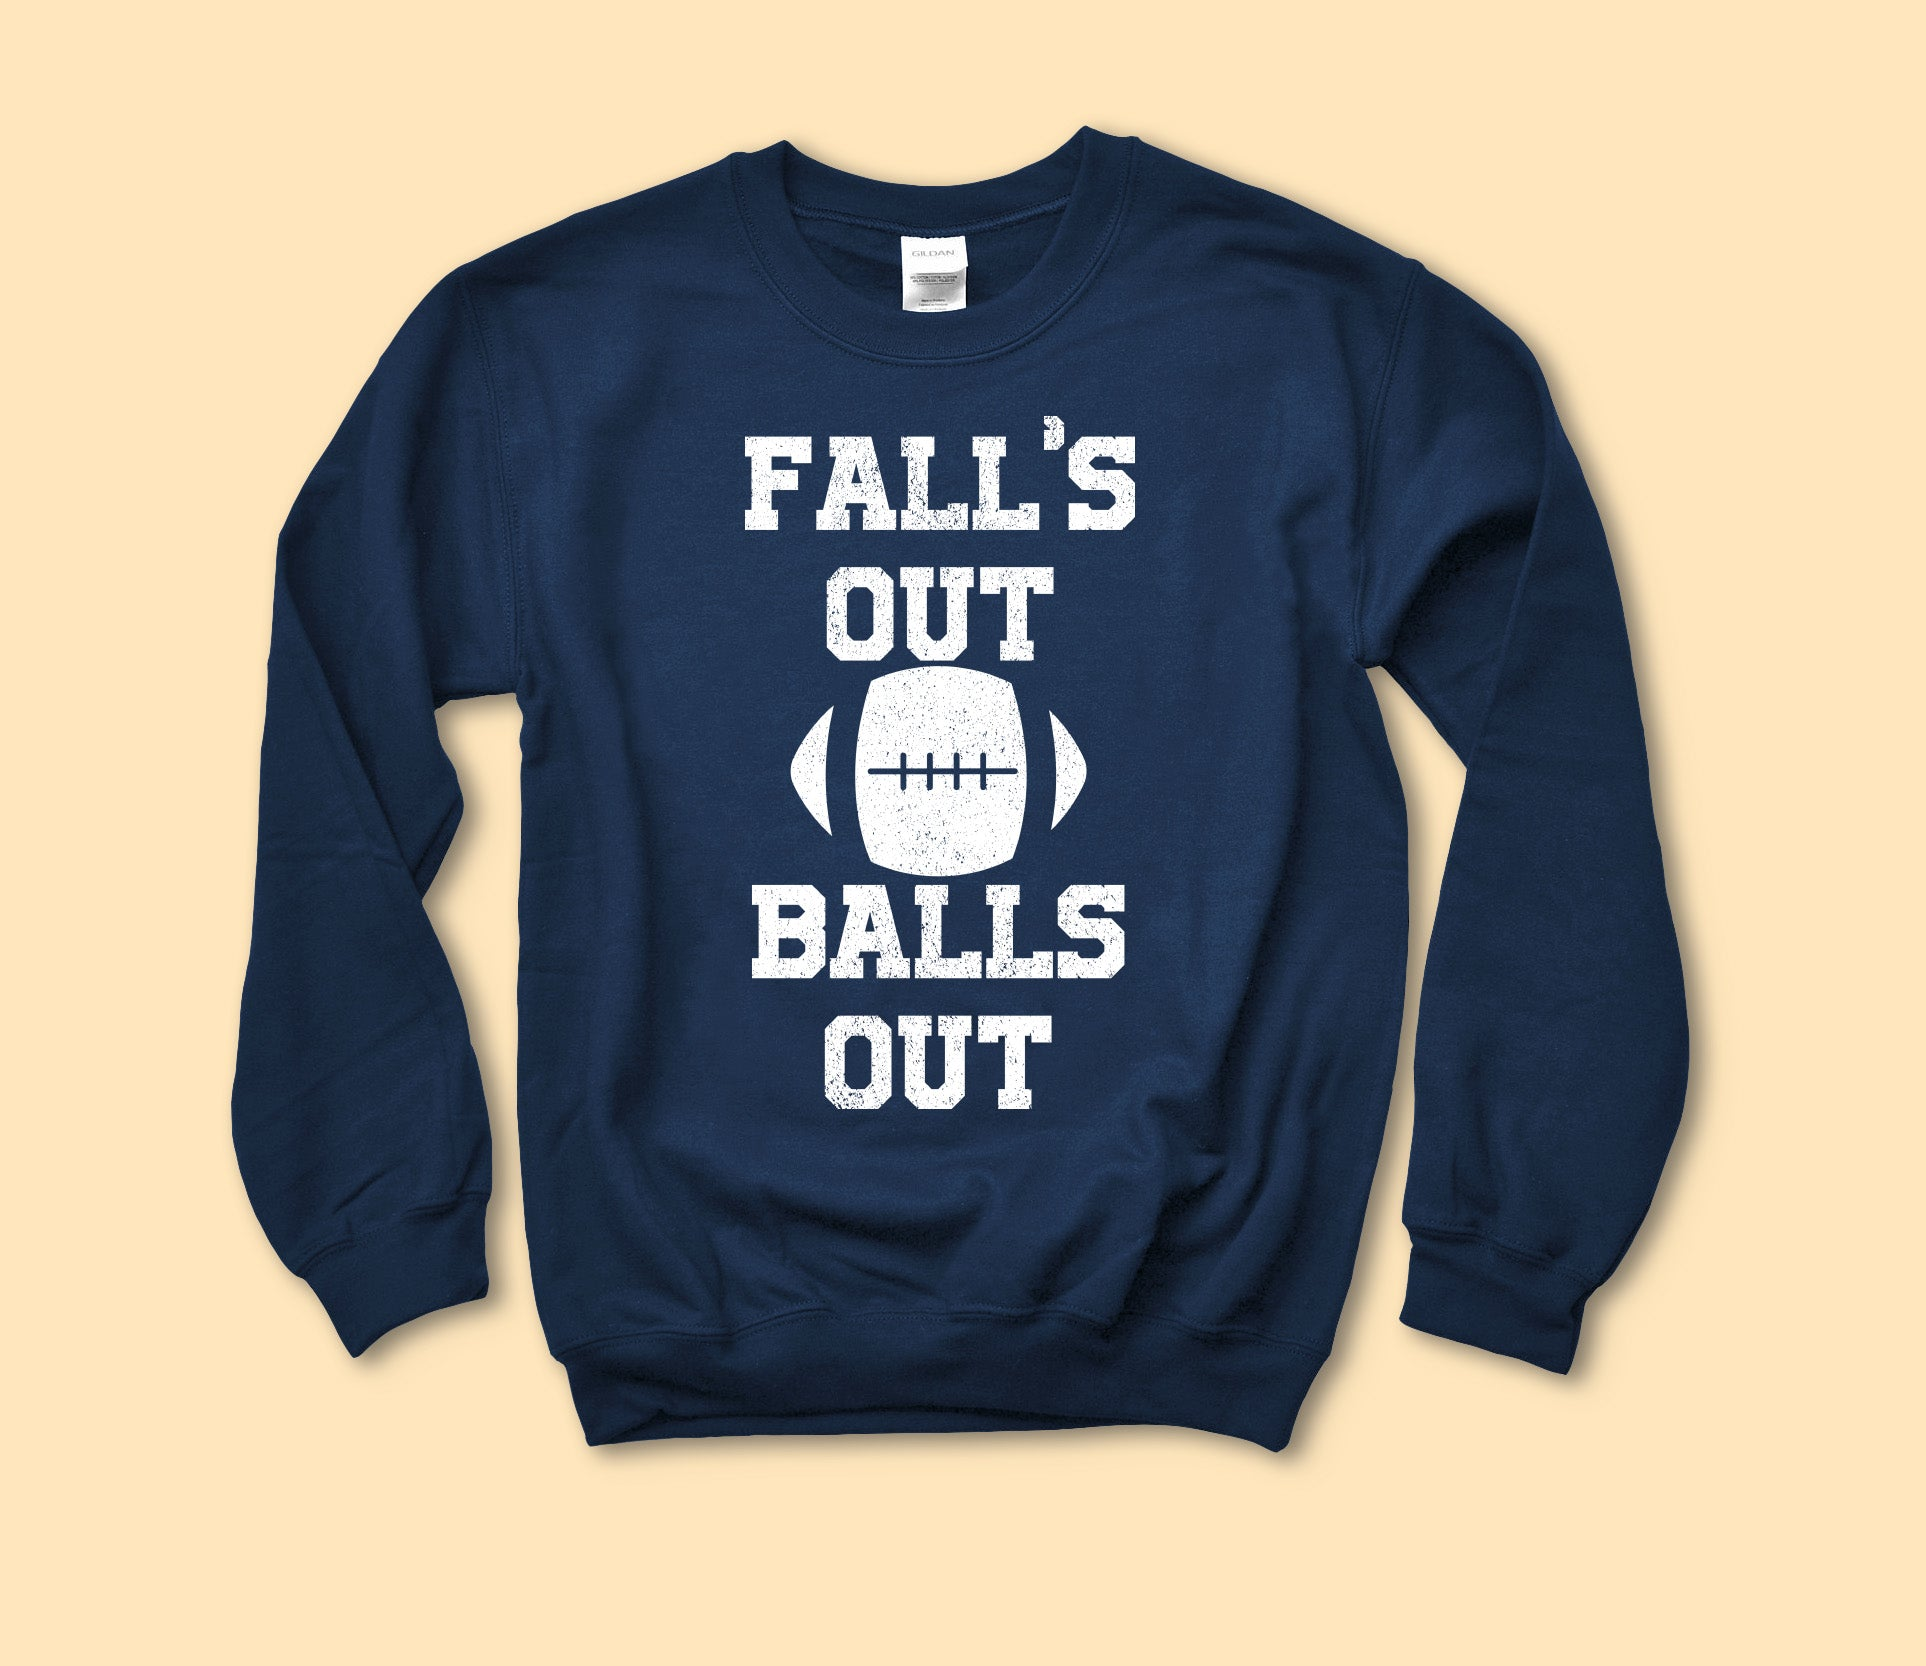 Fall's Out Ball's Out Sweatshirt